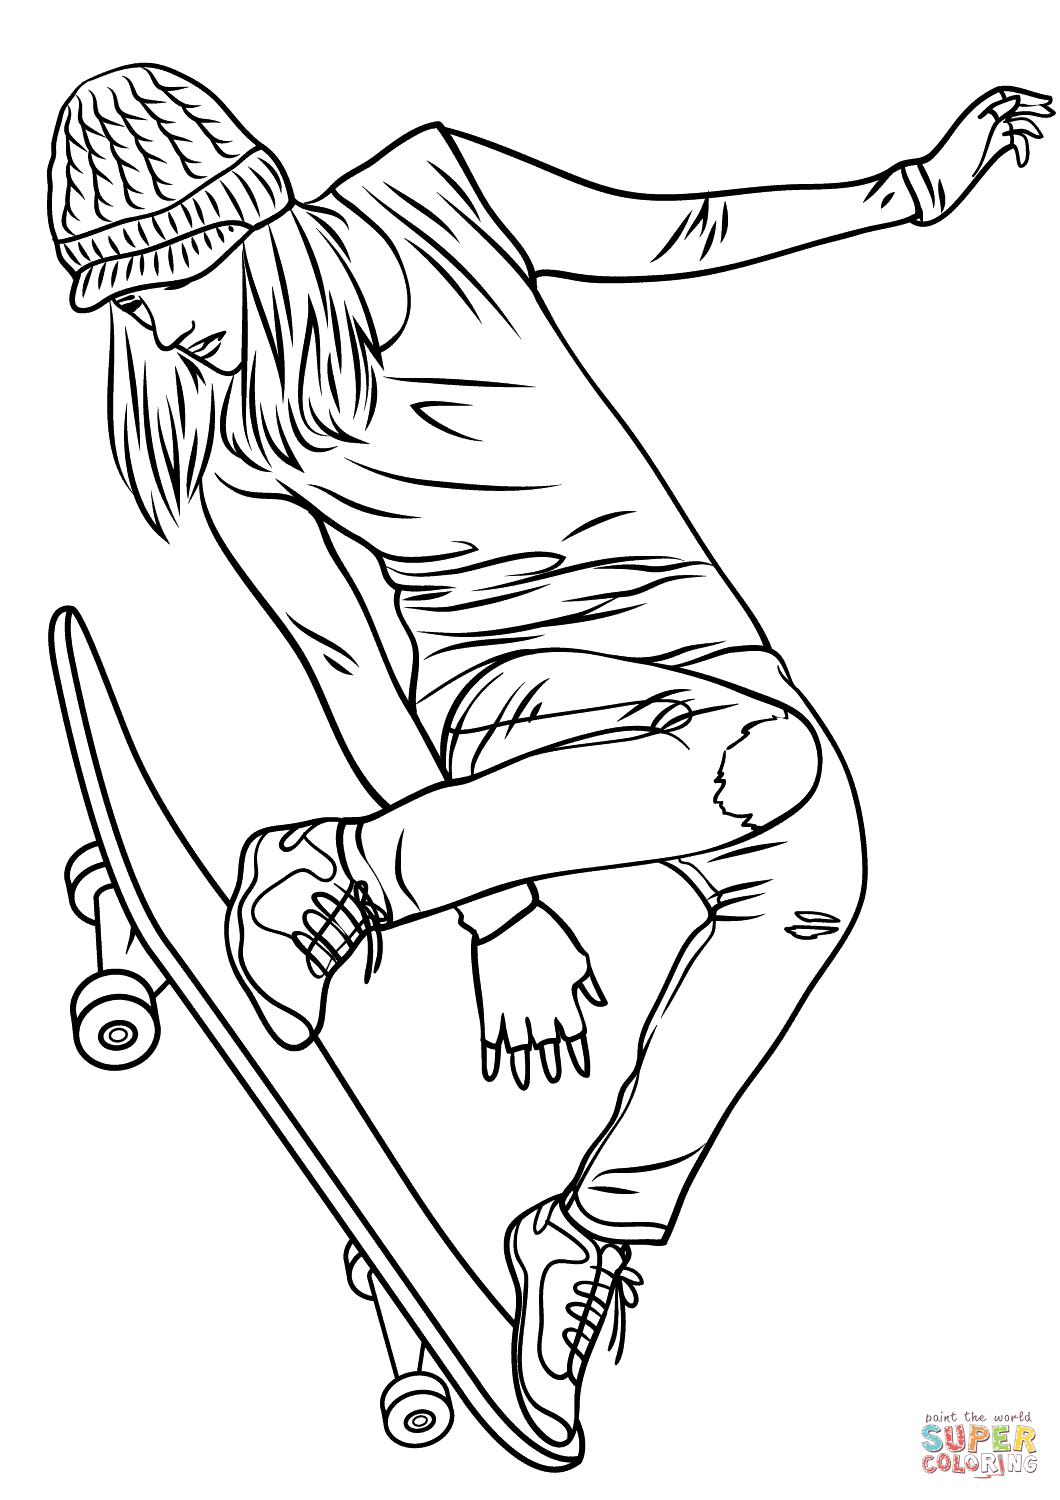 Girl Skateboarding coloring page.